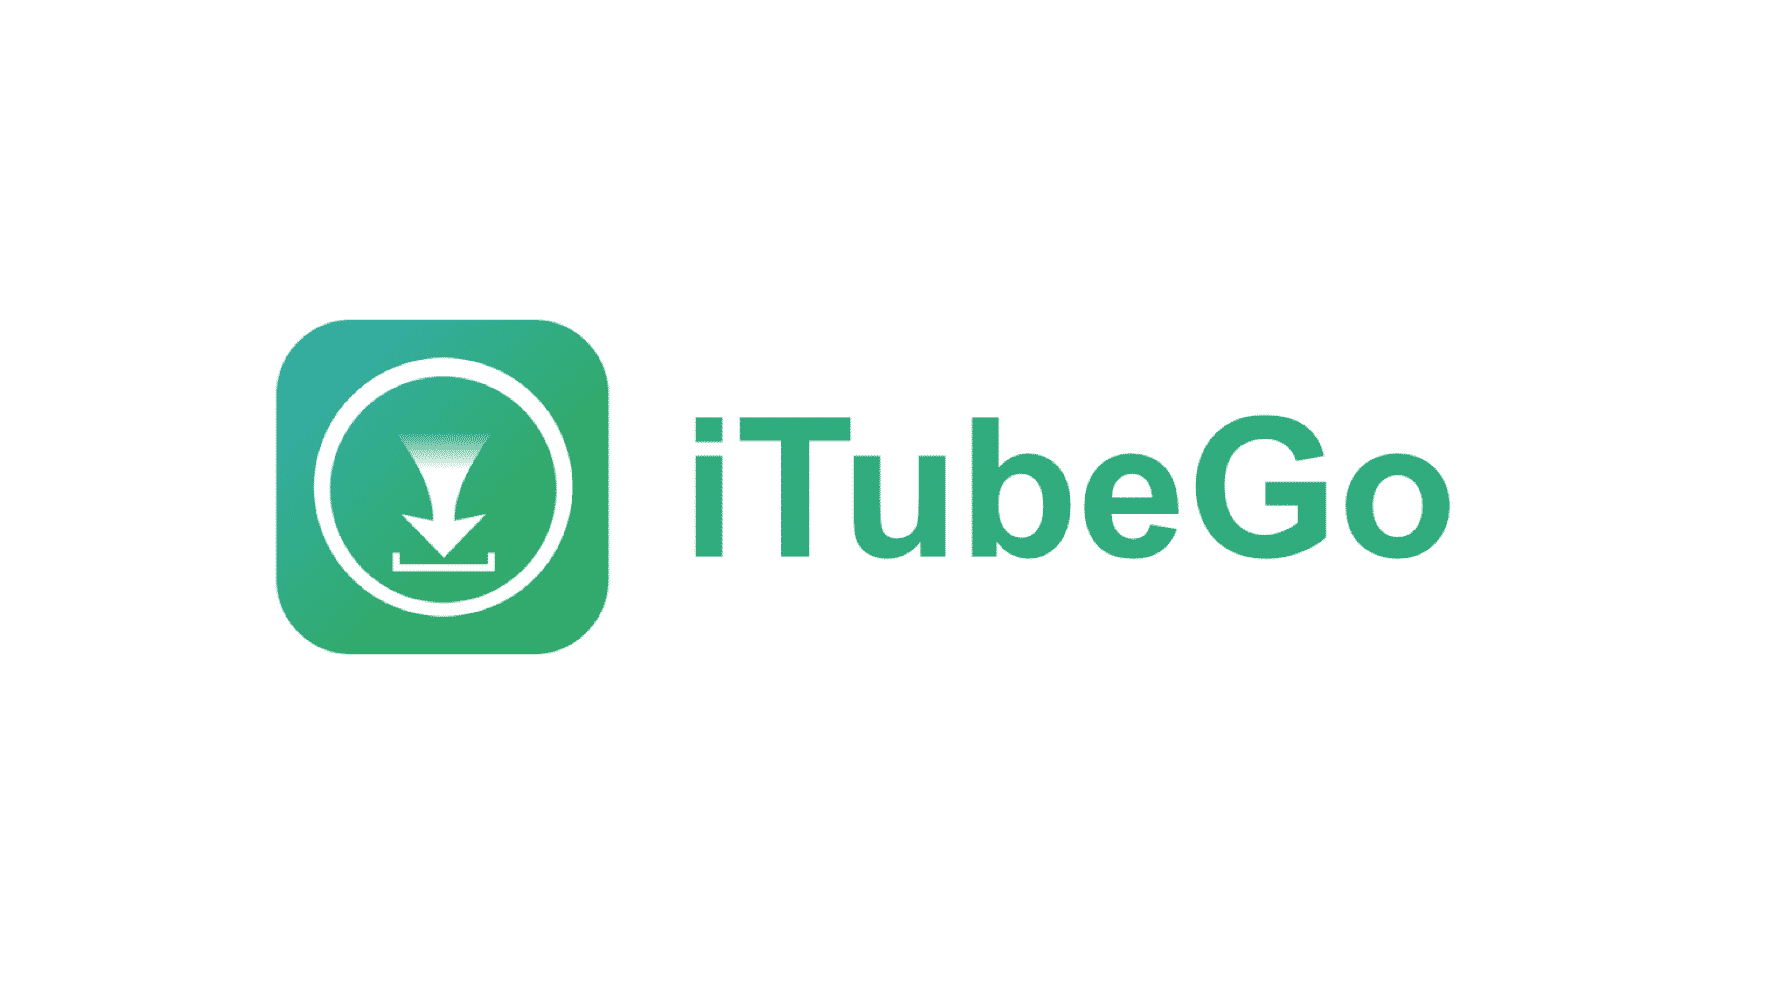 iTubeGo Review - Full HD YouTube Downloader You Need to Know